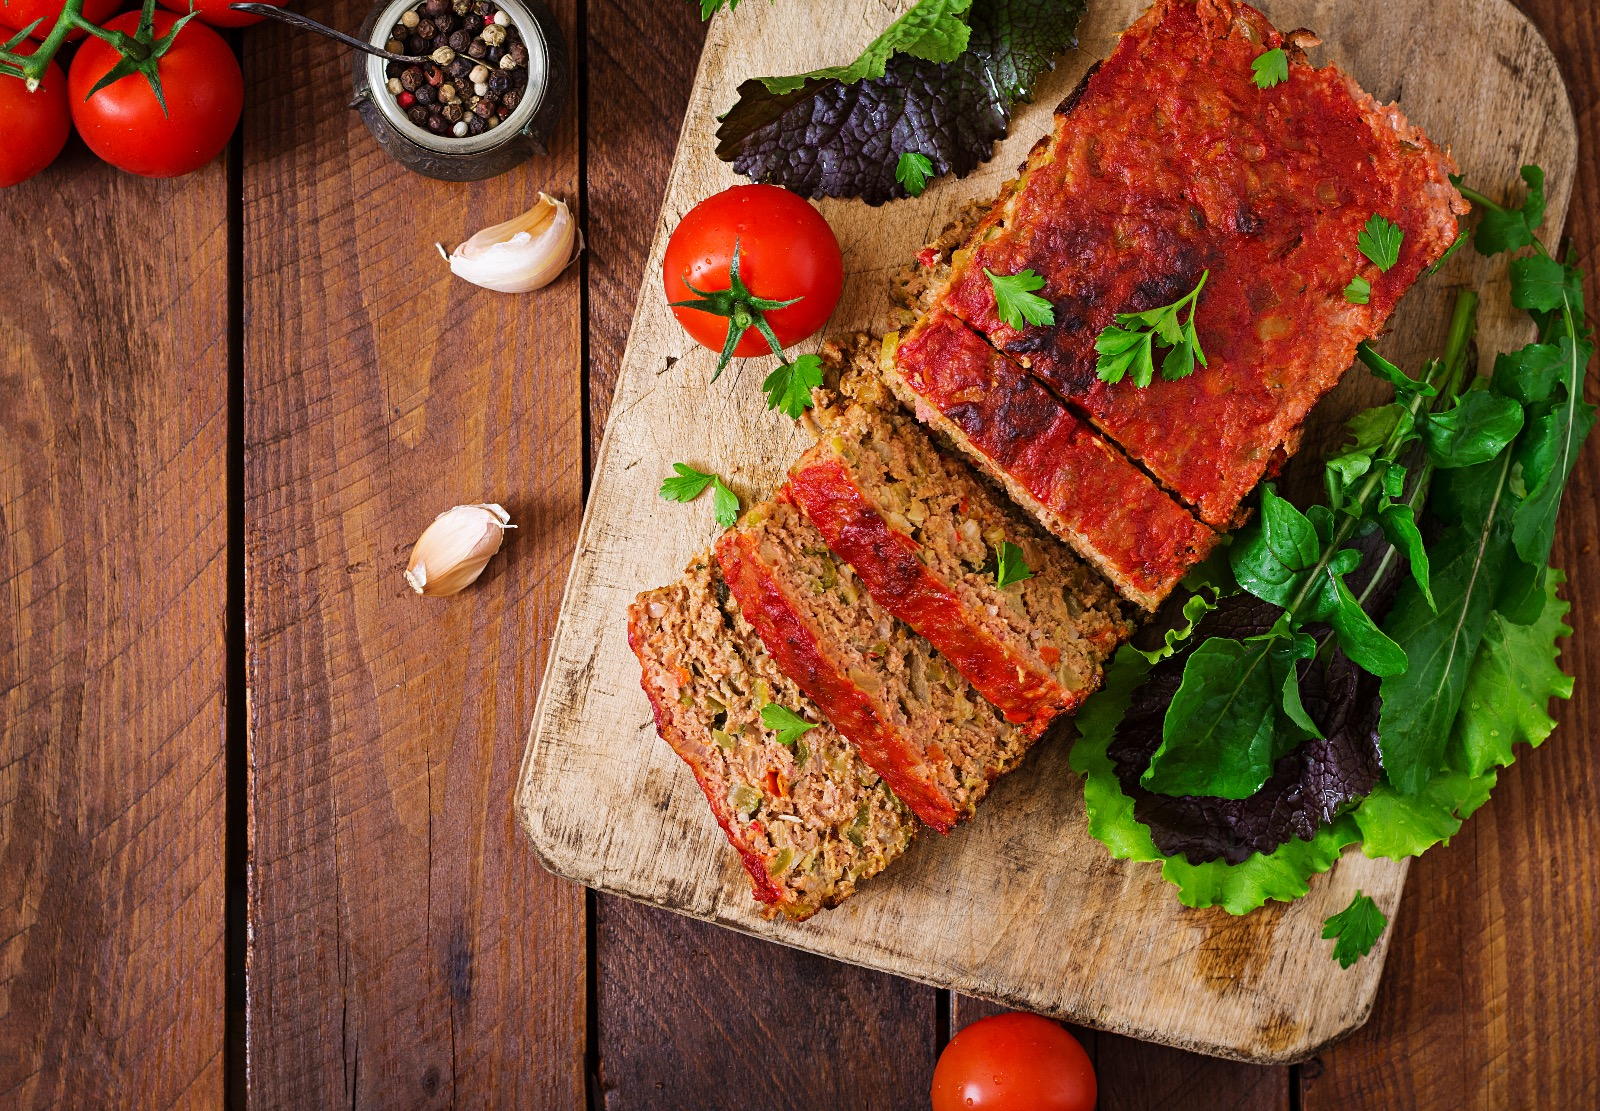 Mouthwatering Bison & Beef Meatloaf Recipes From Beck & Bulow Family